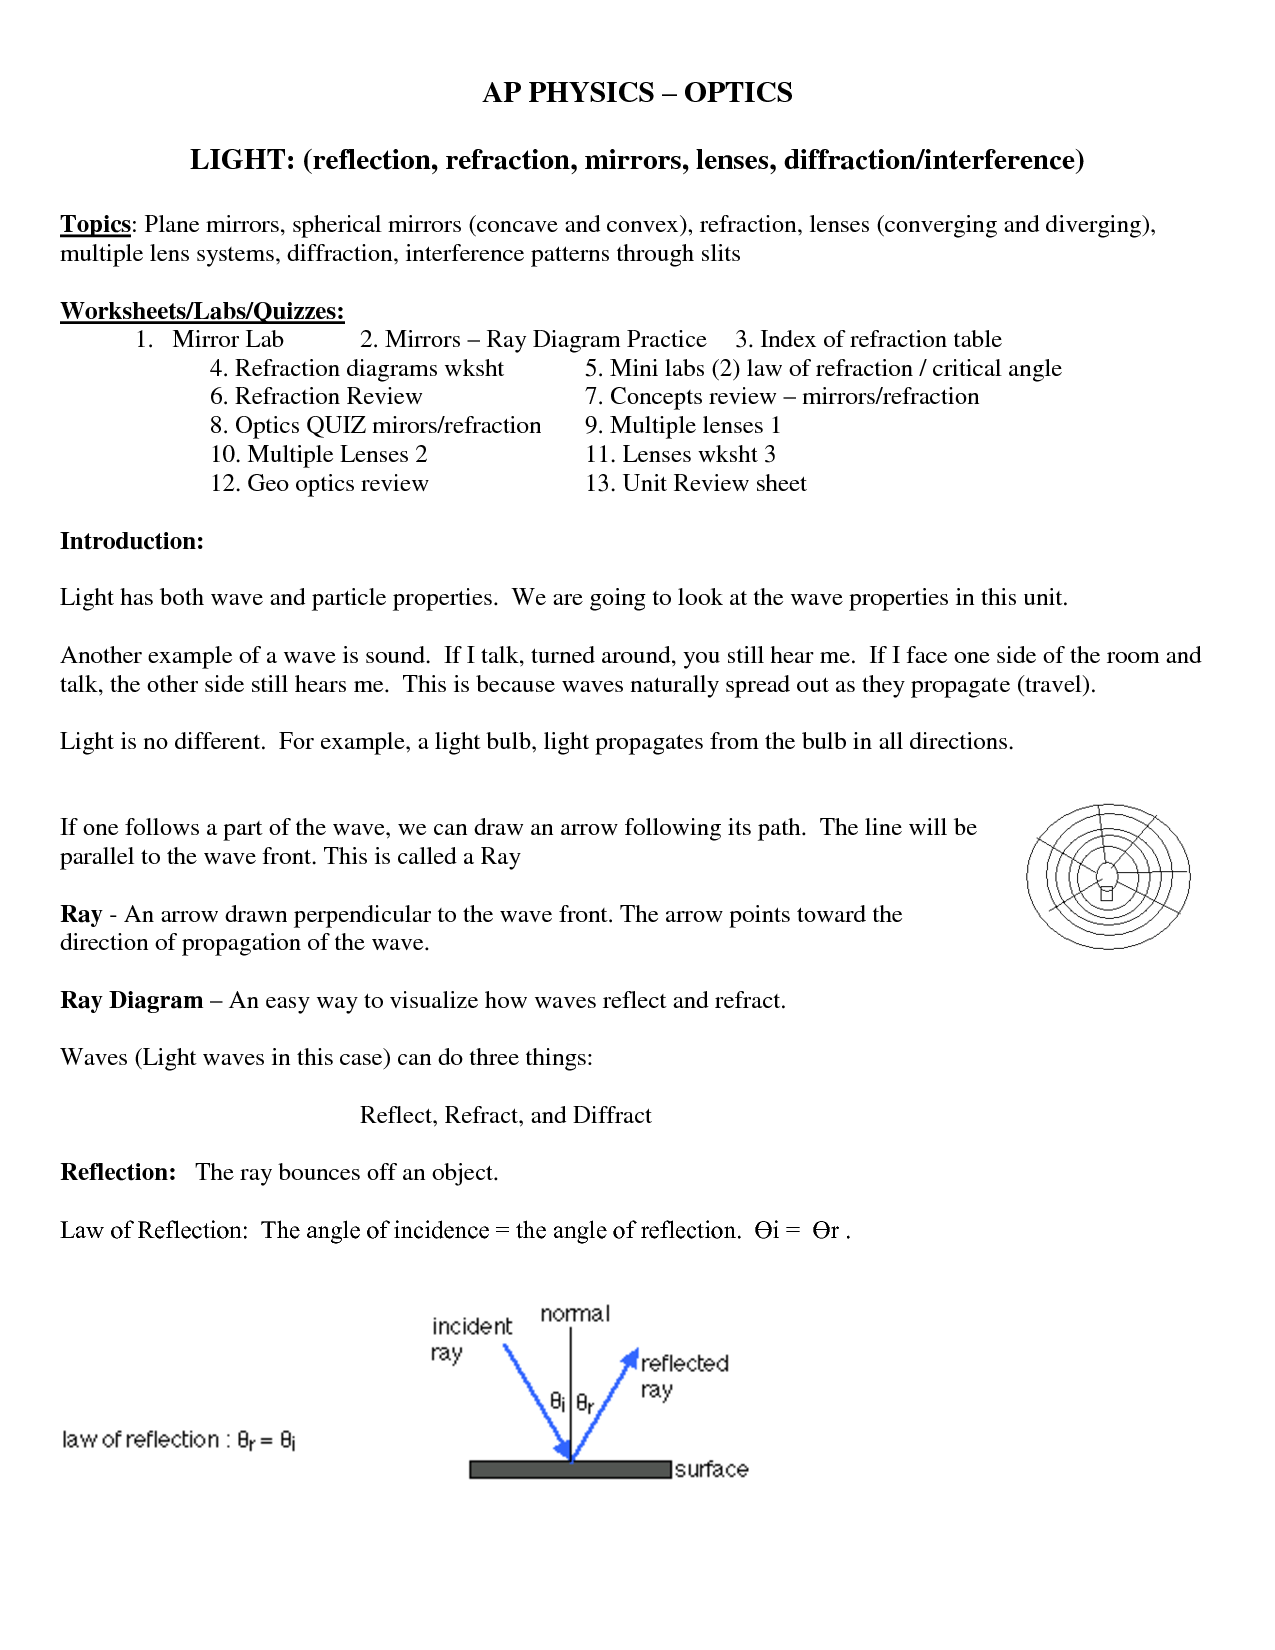 Kuta Reflection Worksheet